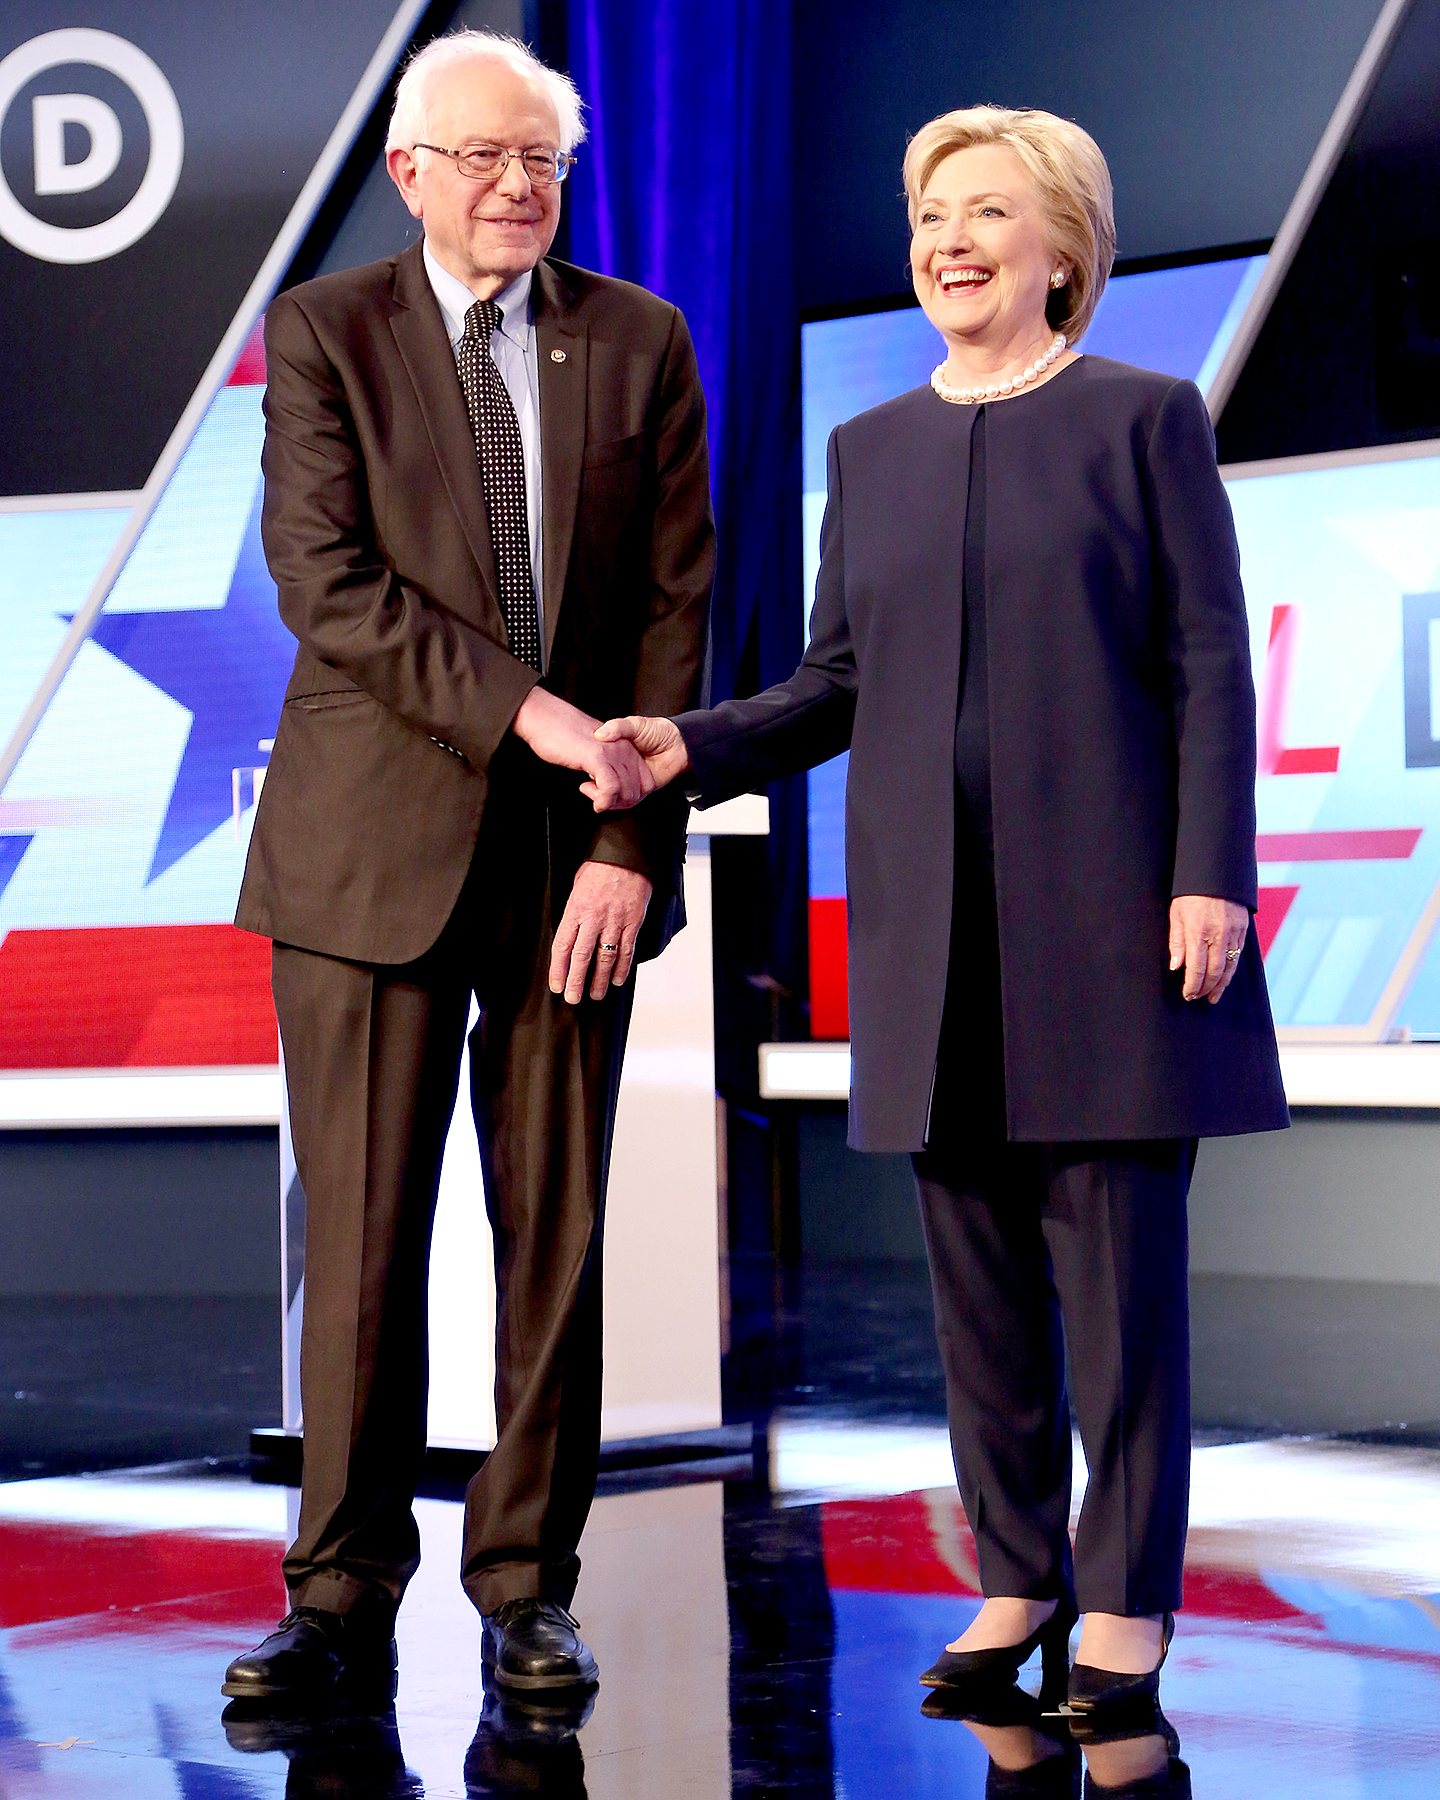 Bernie Sanders and Hillary Clinton are seen before the Univision News and Washington Post Democratic Presidential Primary Debate on the Miami Dade College Kendall Campus on March 9, 2016, in Miami.